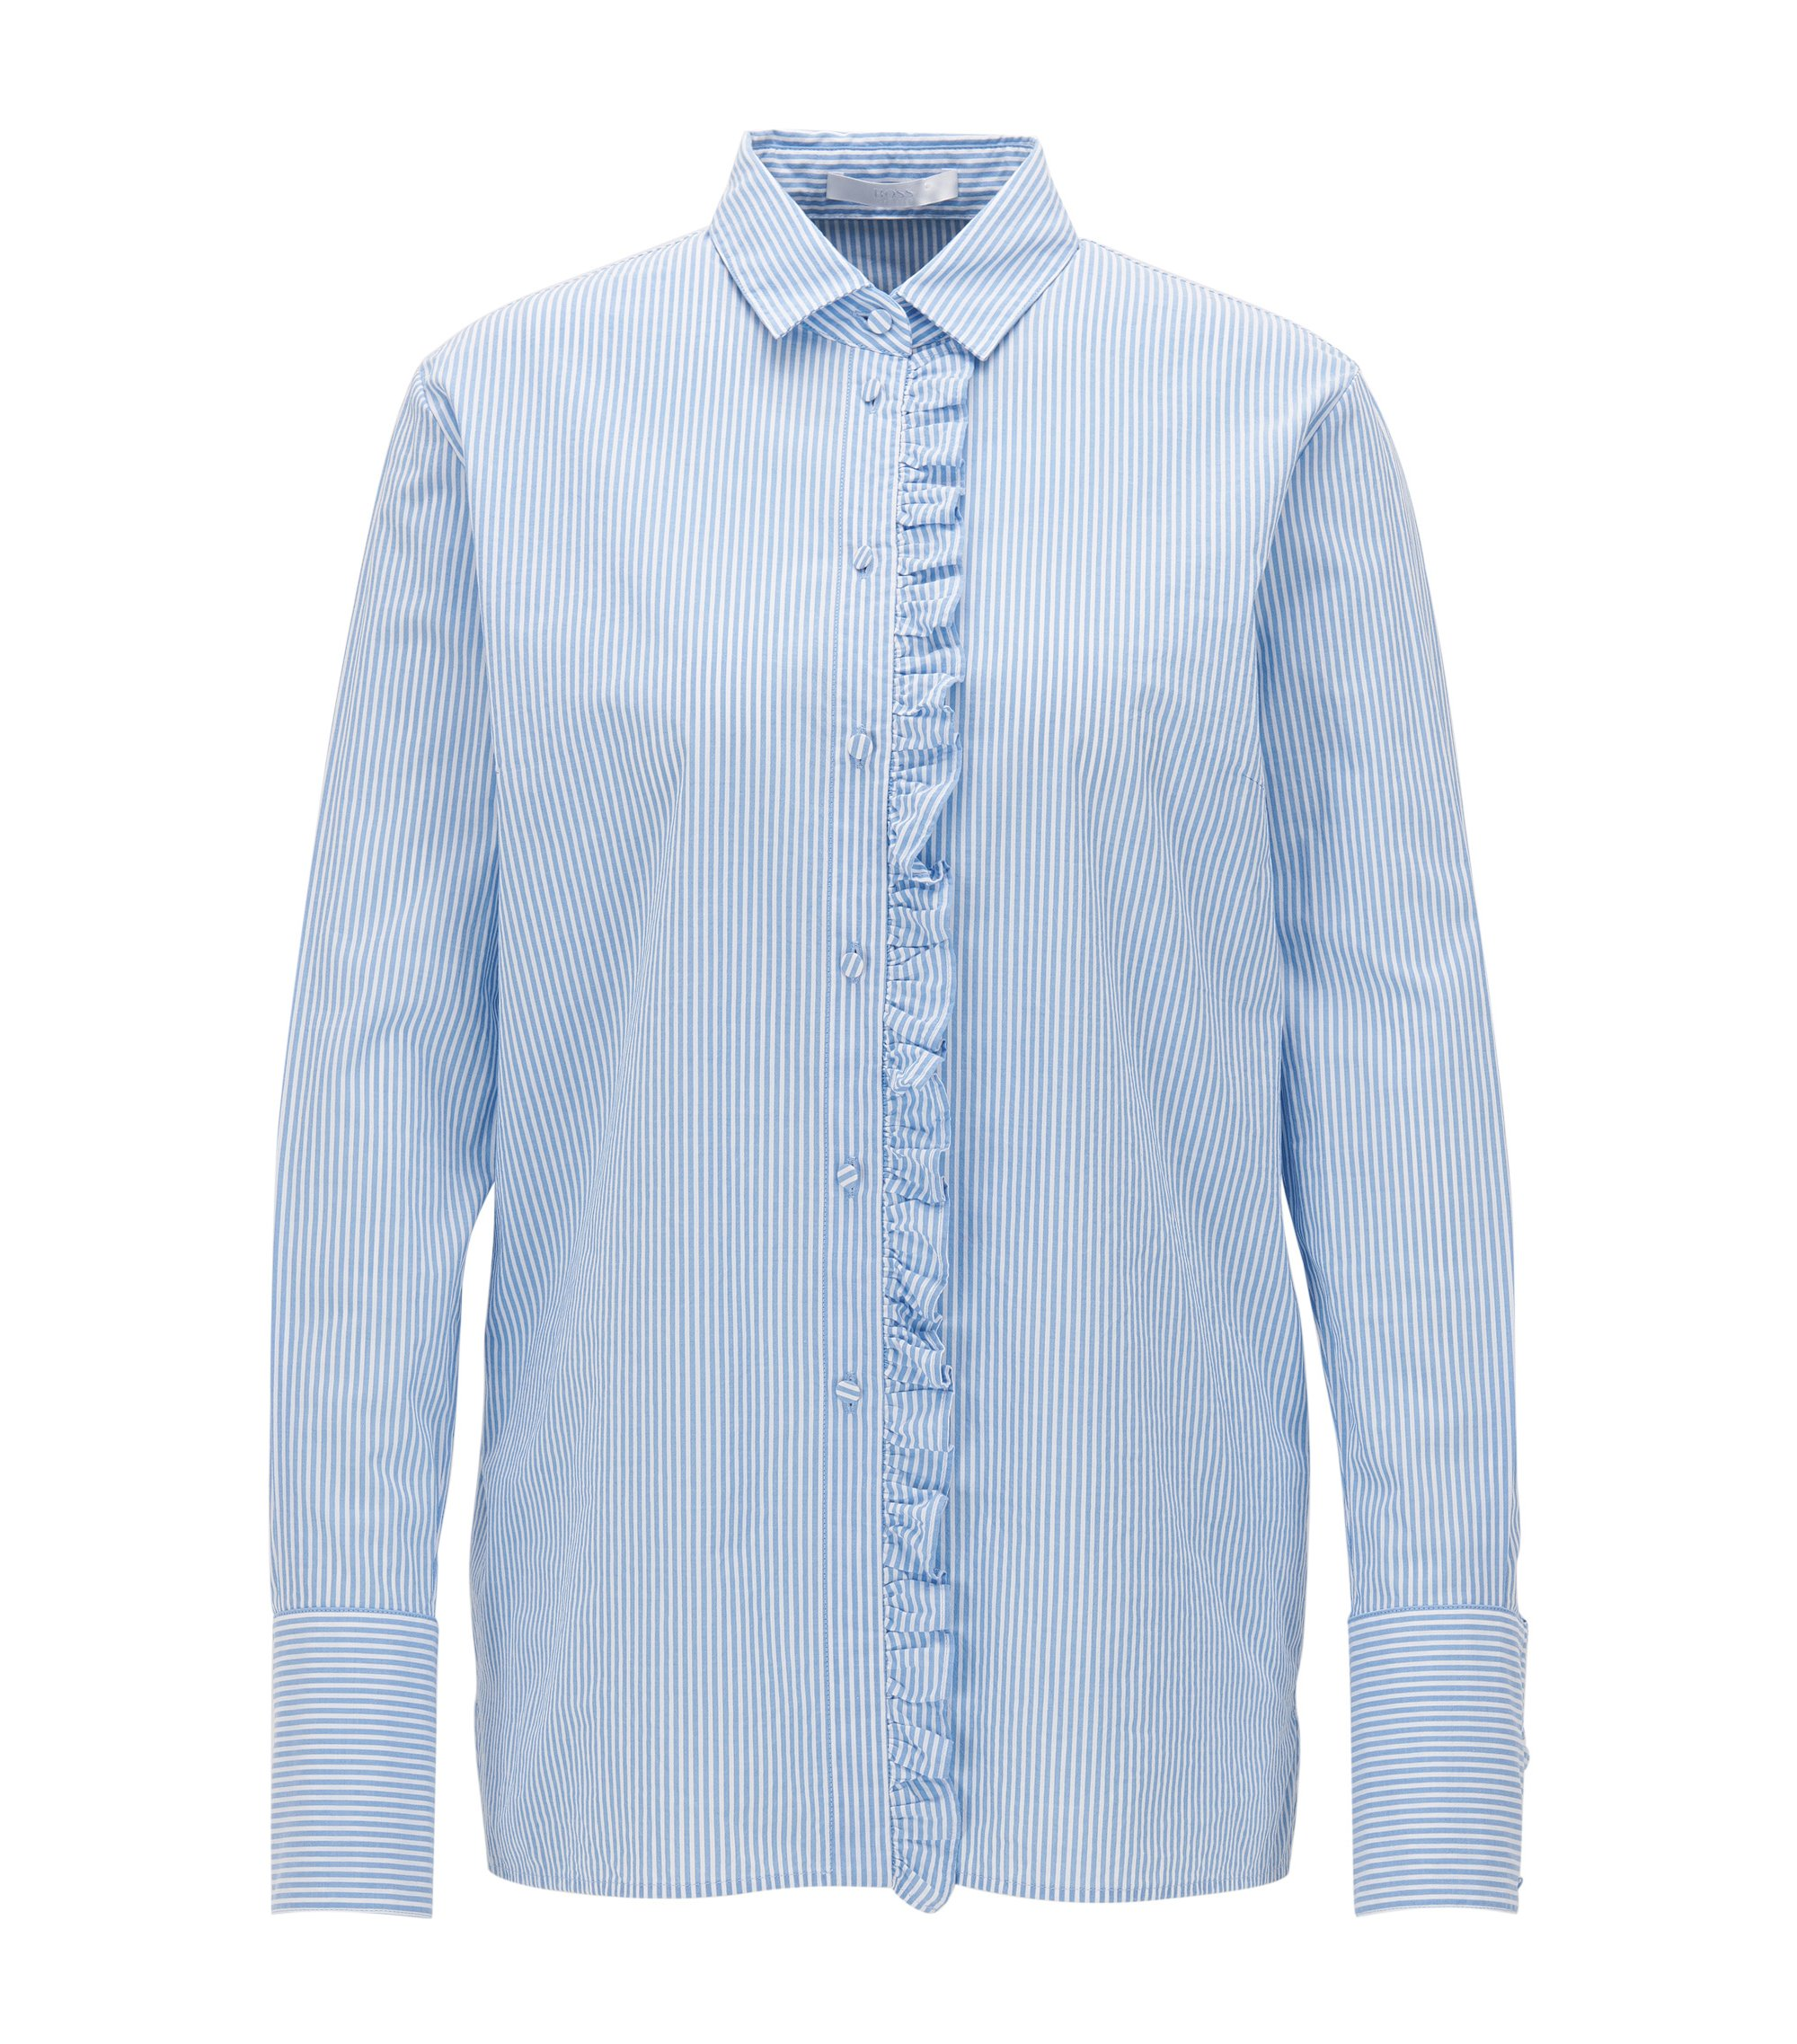 Relaxed-fit cotton shirt with ruffle placket, Patterned